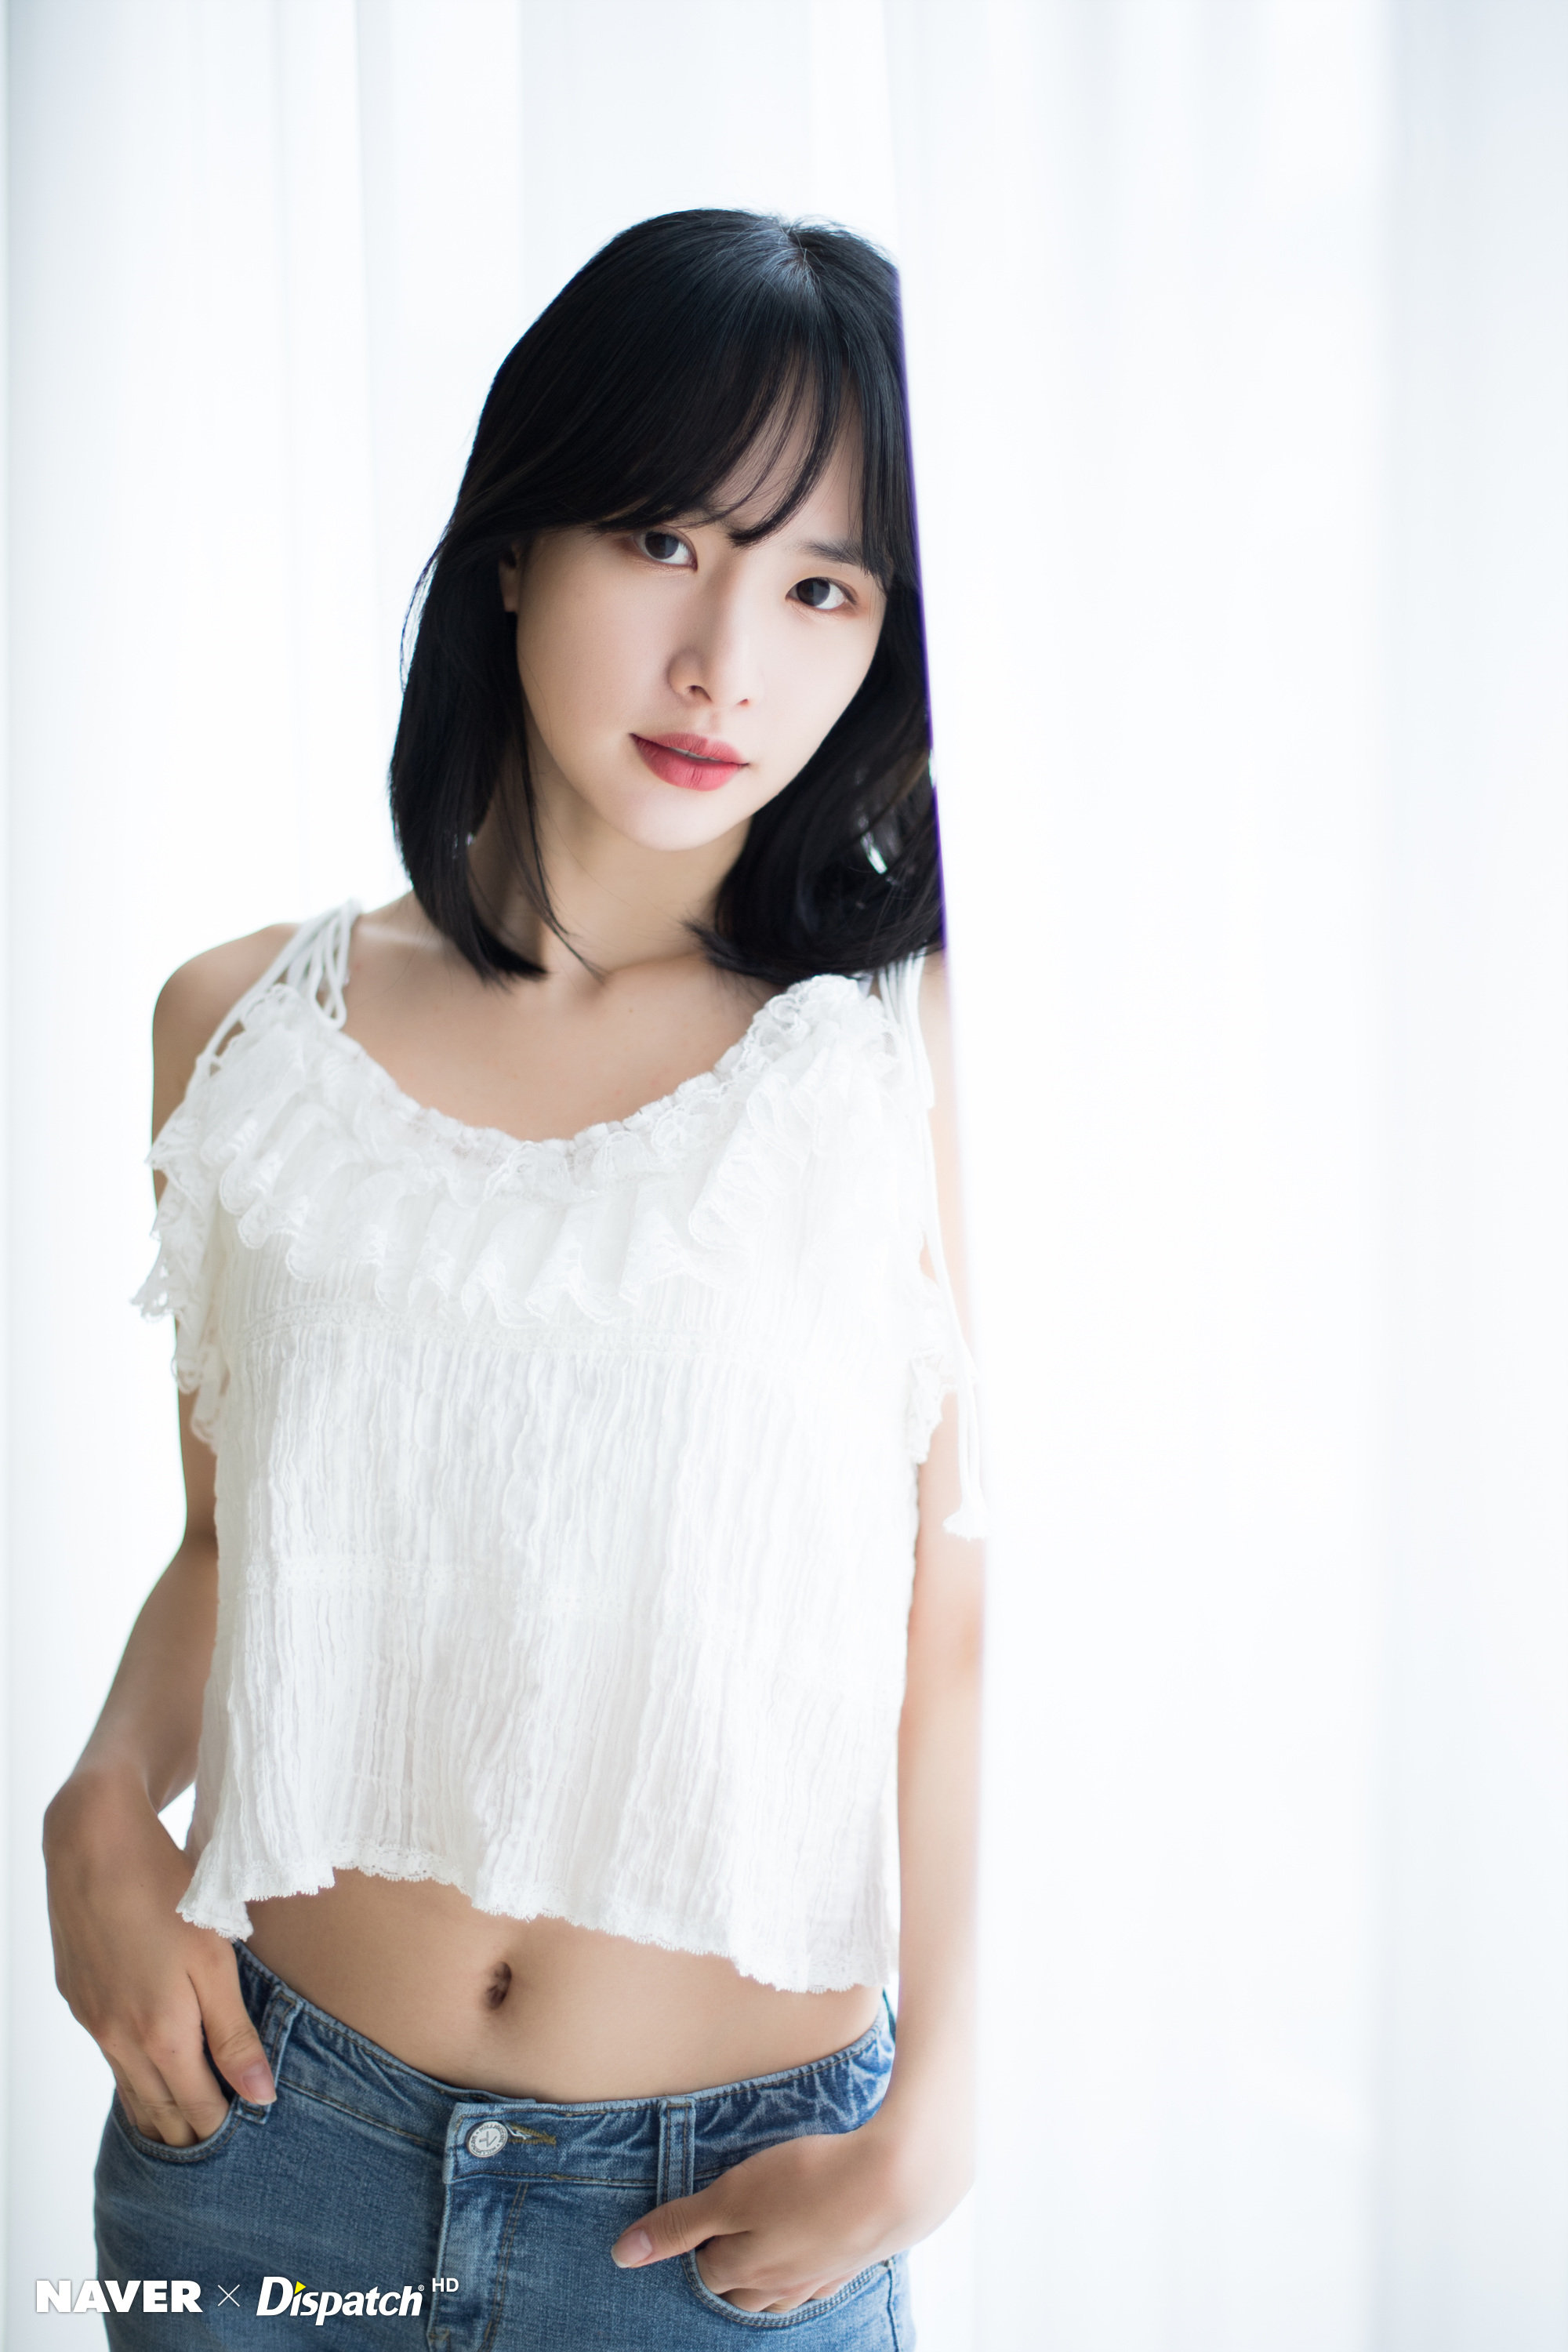 WJSN Seola For The Summer